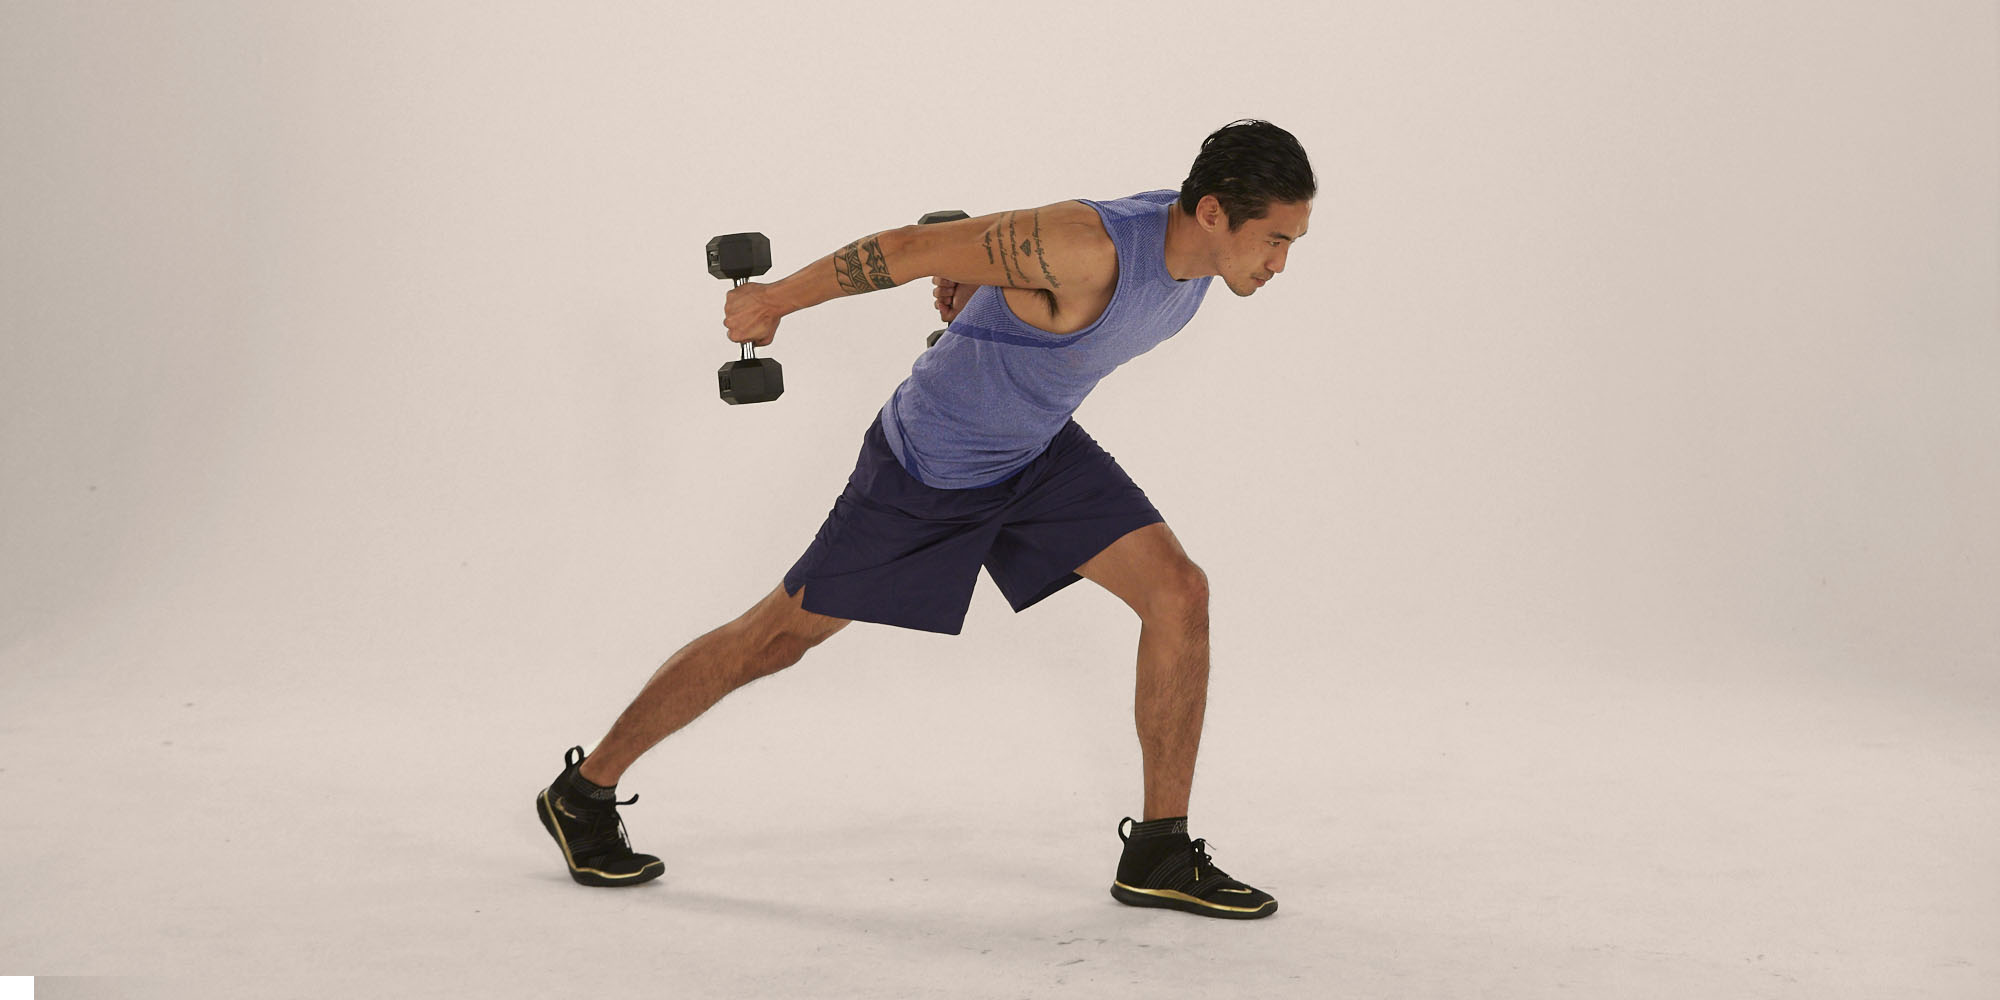 11 of the Best Triceps Exercises You Can Add to Your Workout